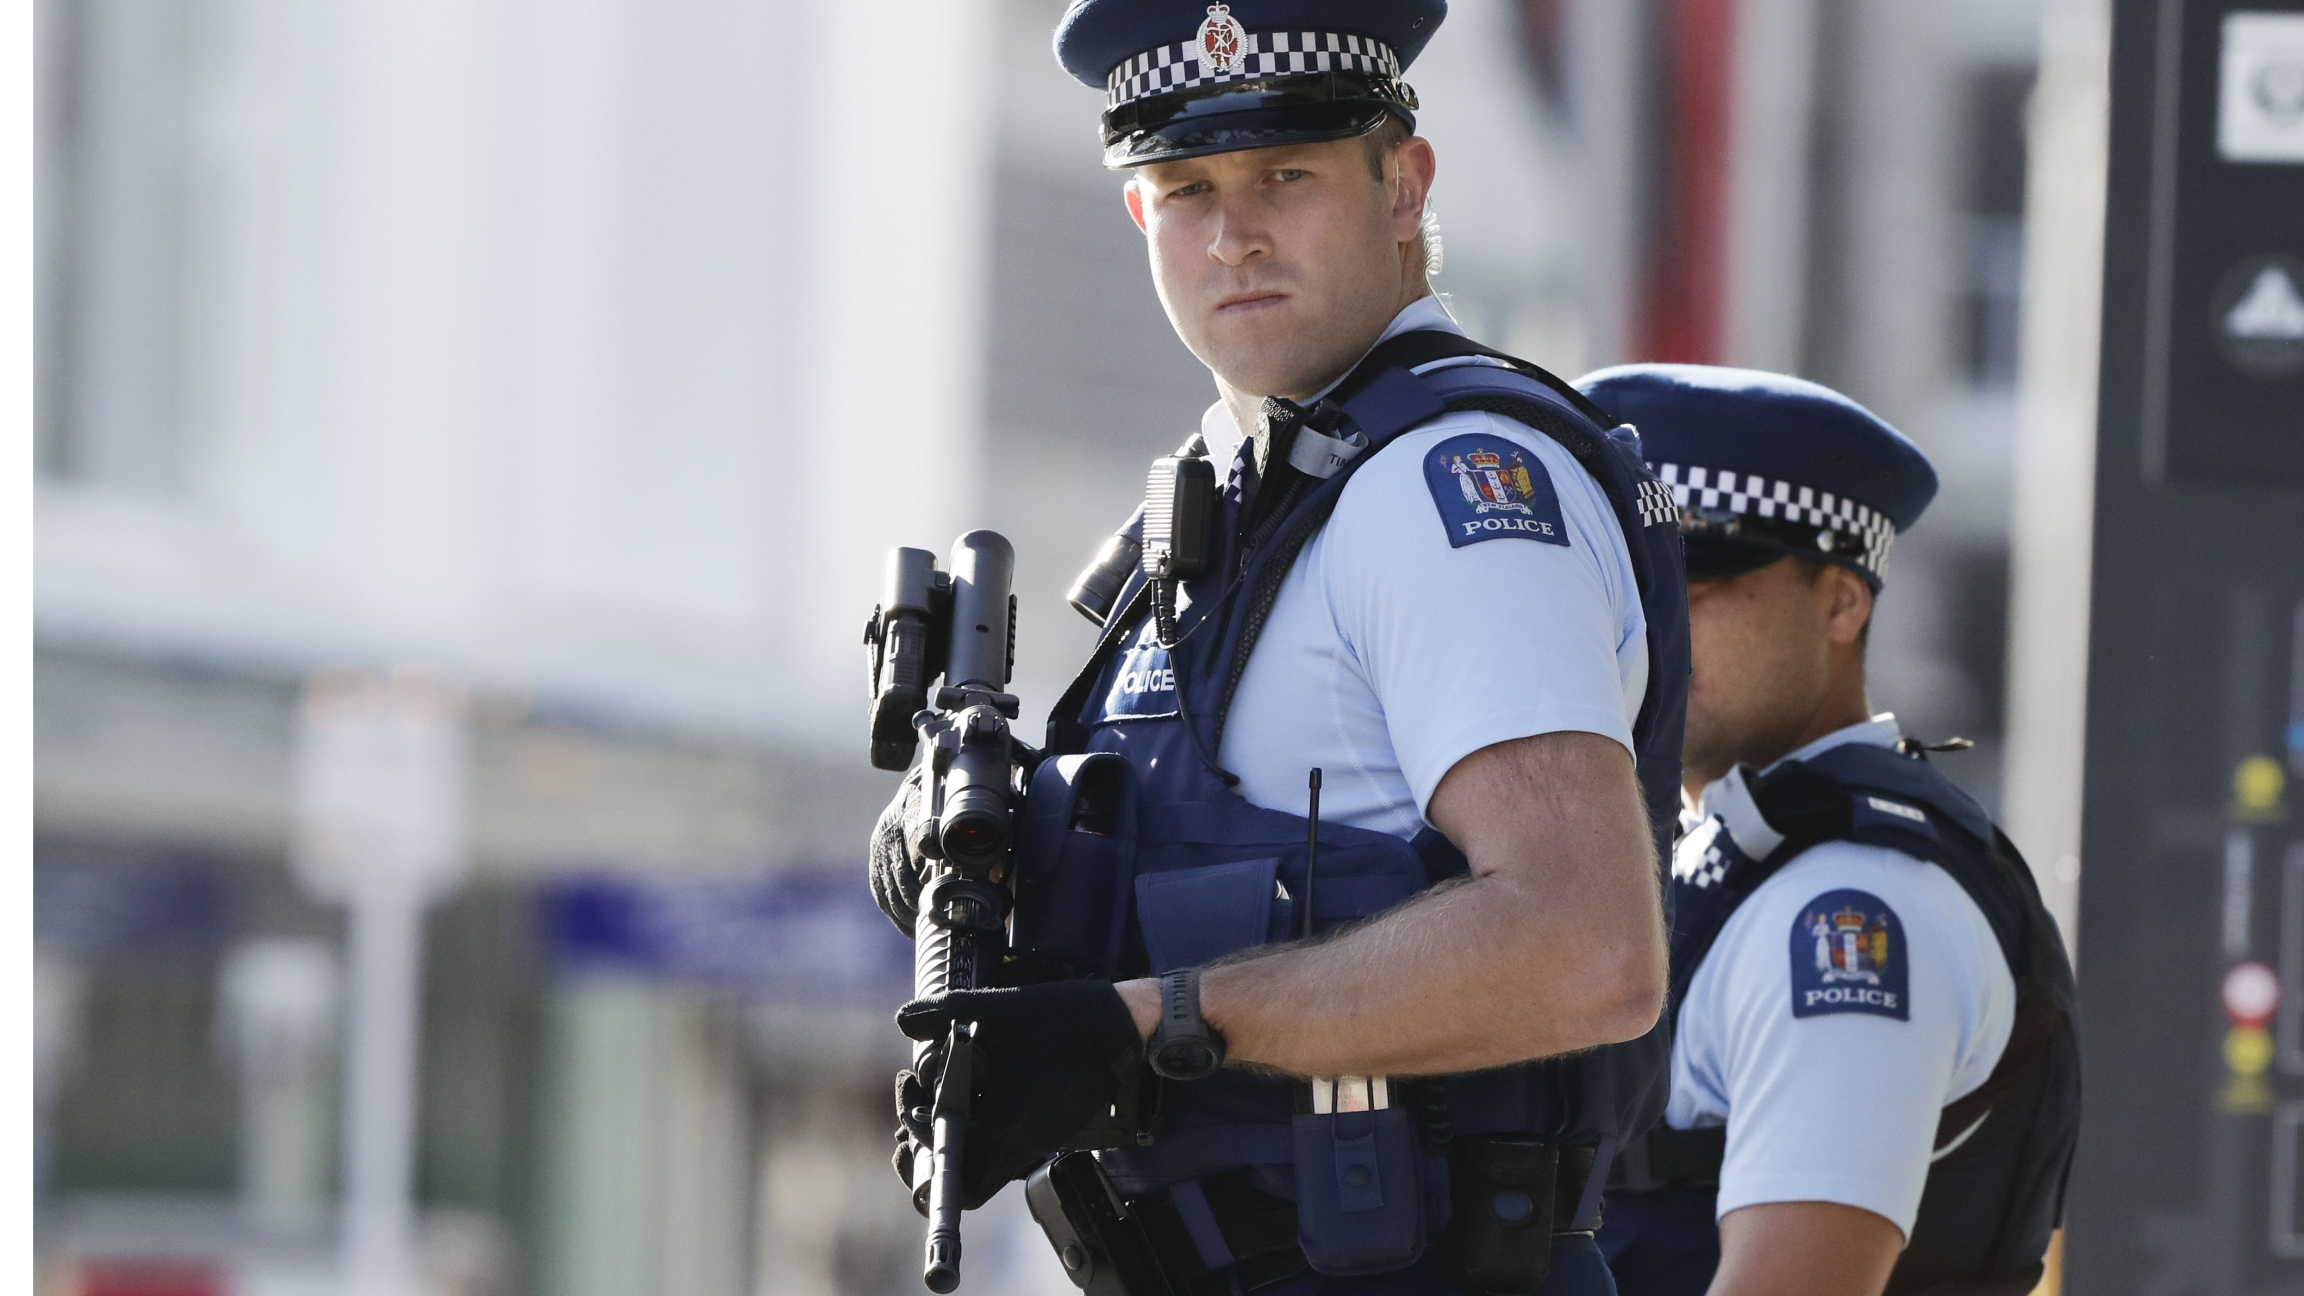 Police officers carry heavy, black guns.